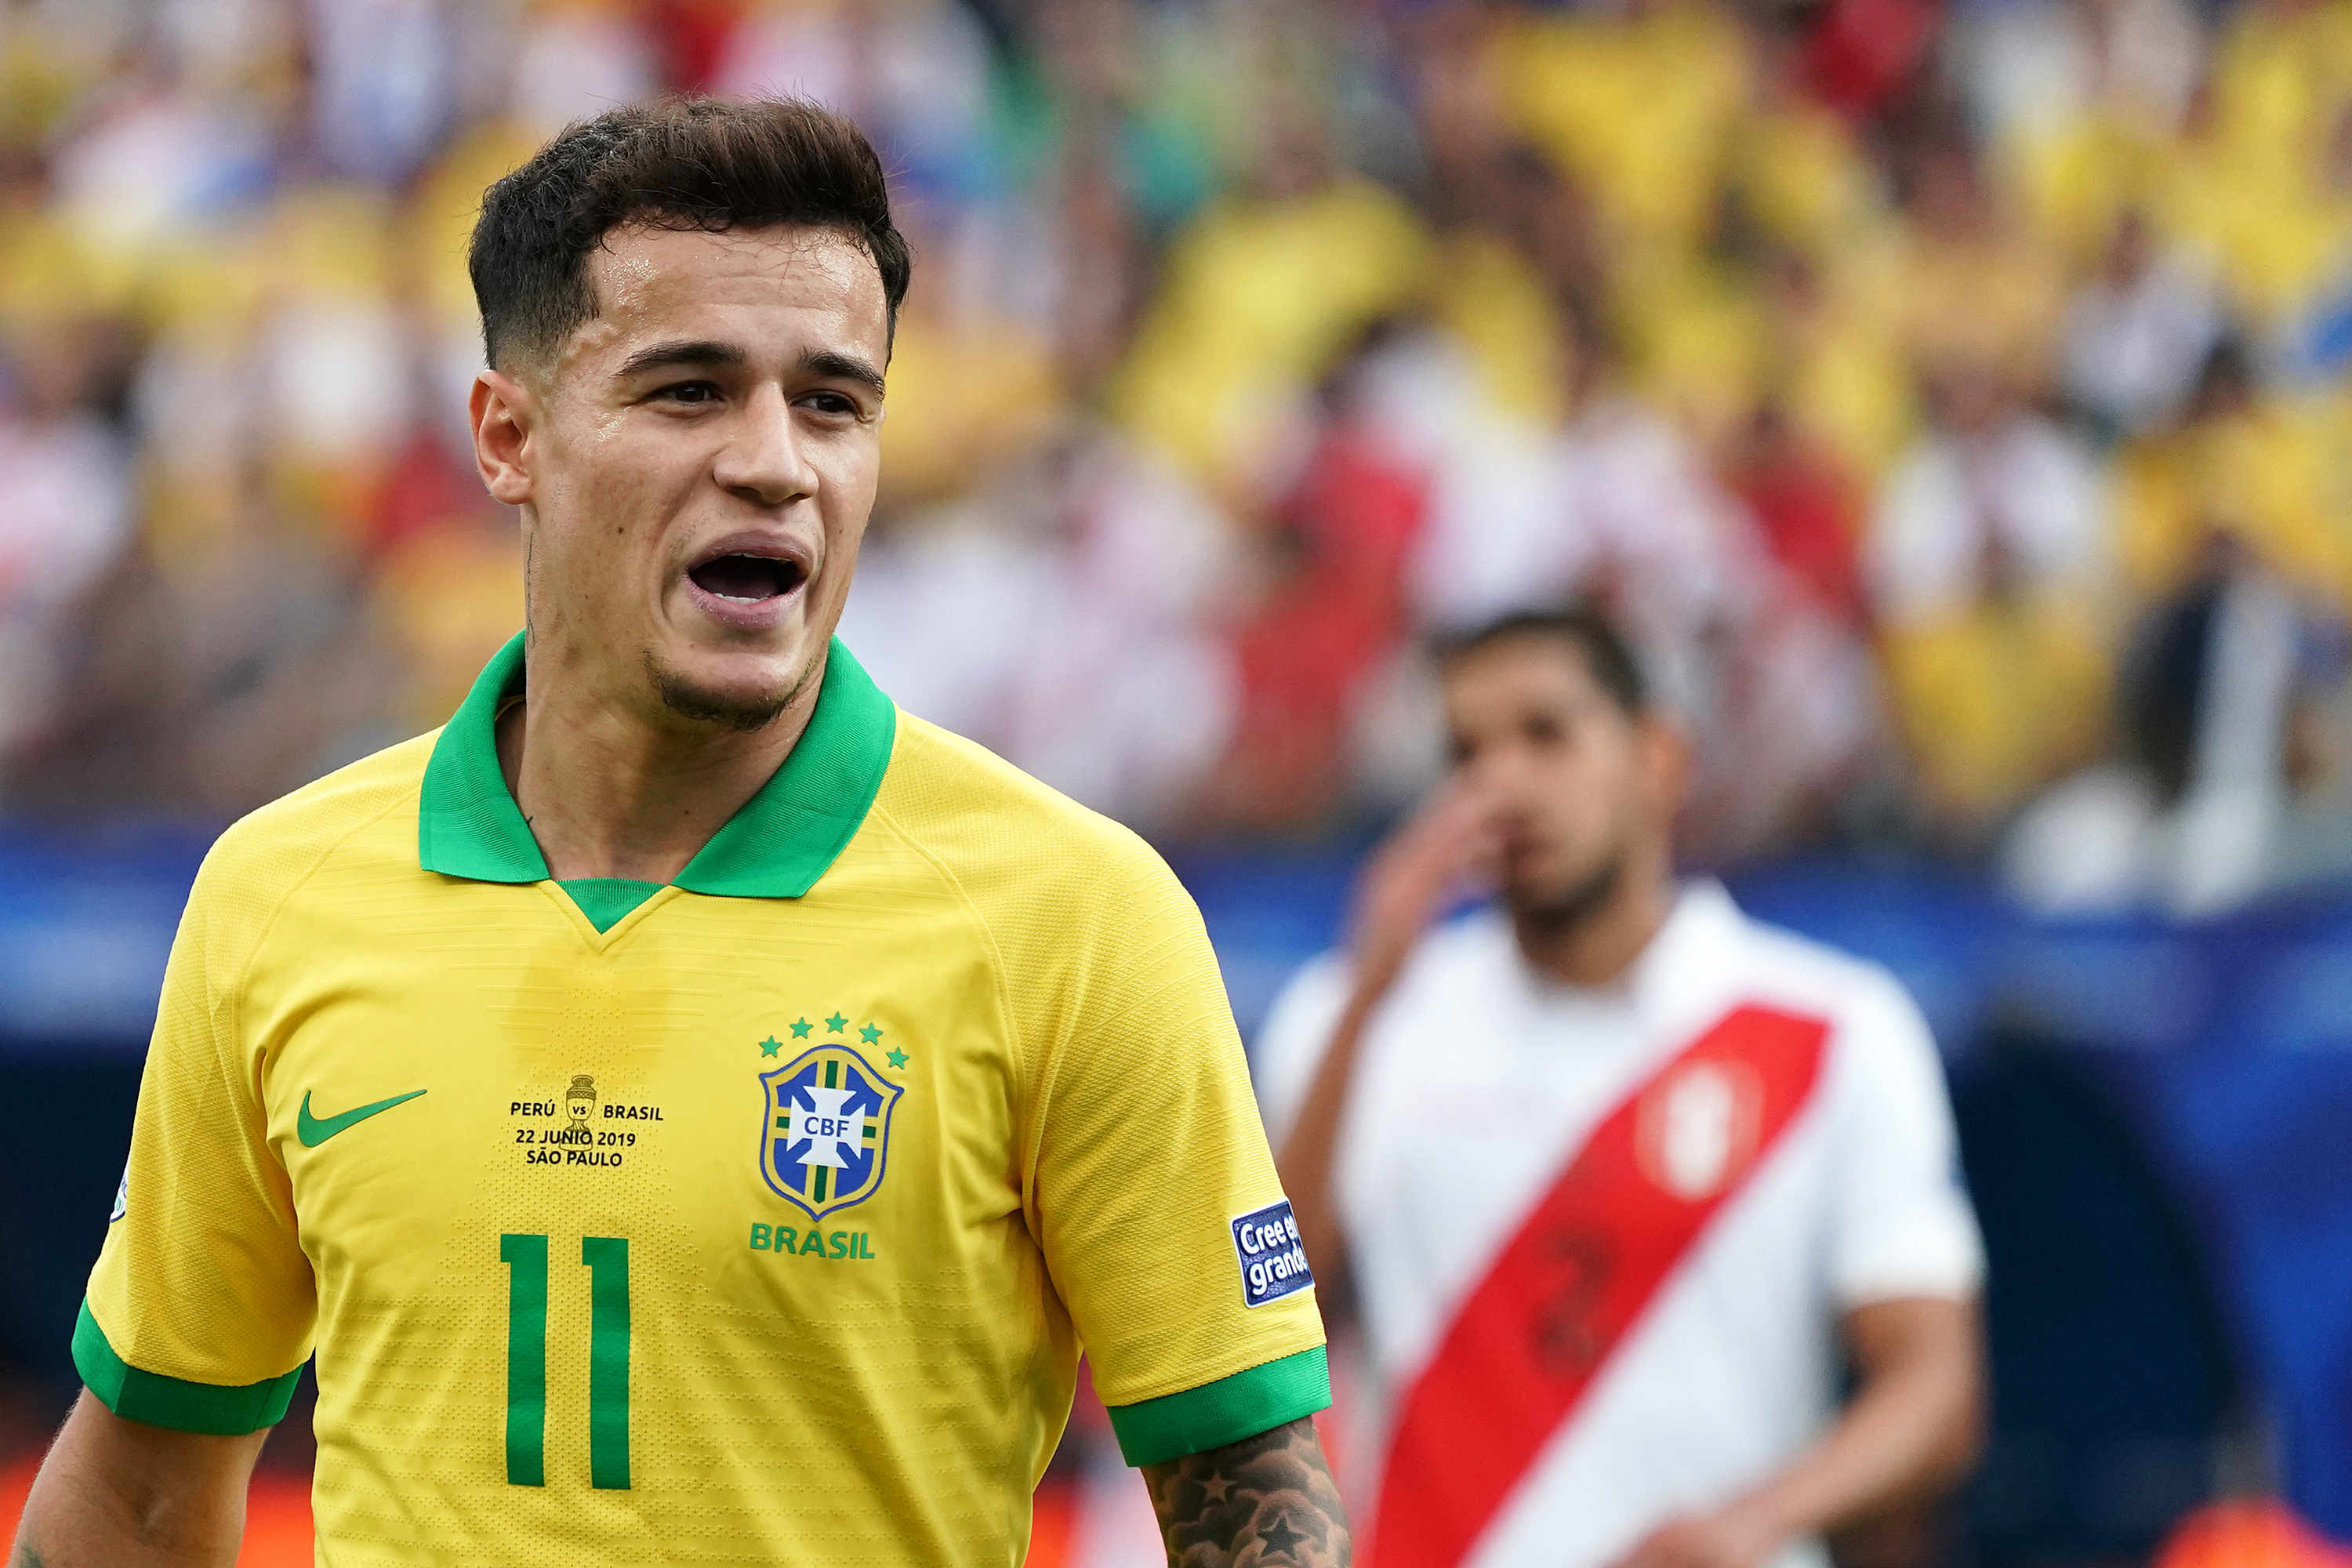 Copa America Final 2019: Latest Form Guide and Reaction Before